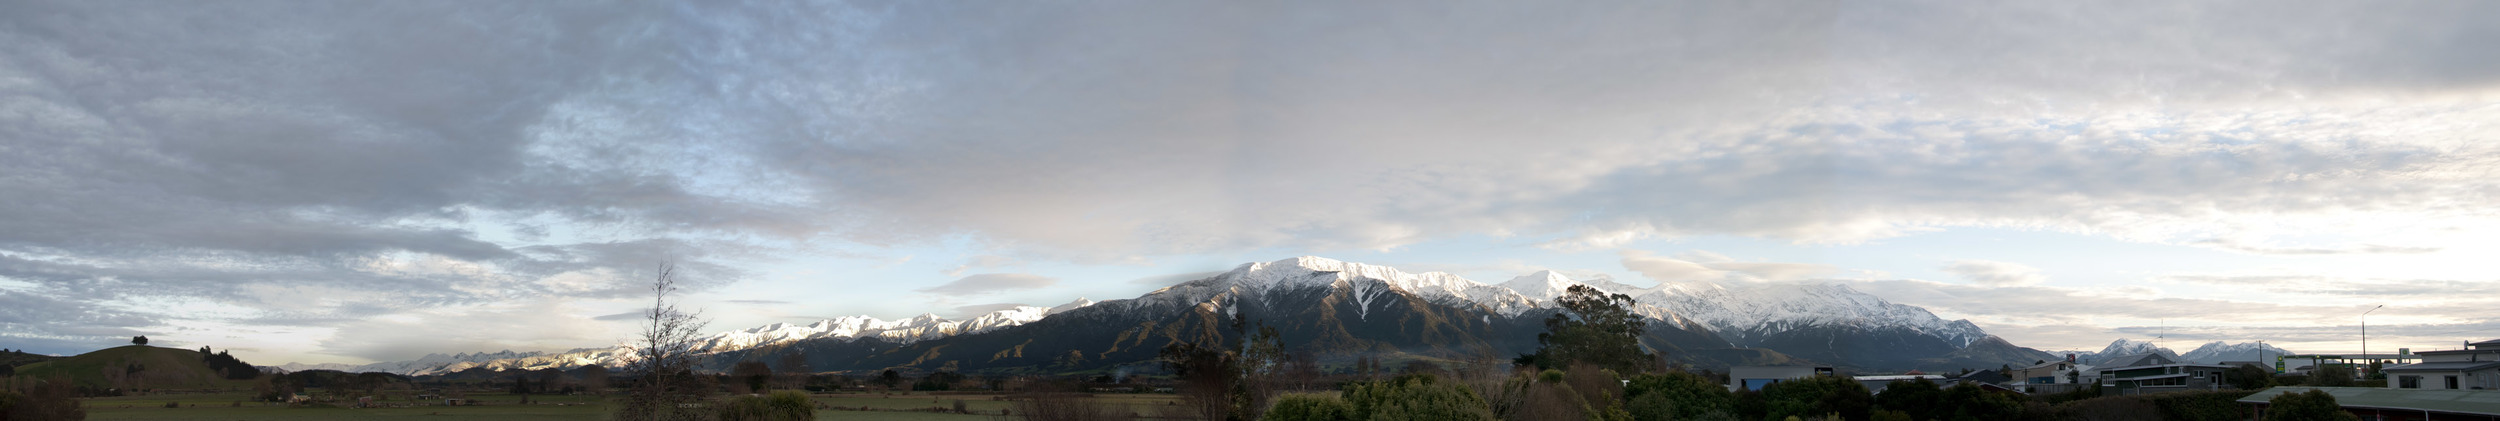 Kaikoura_morning_panorama_20110821.jpg